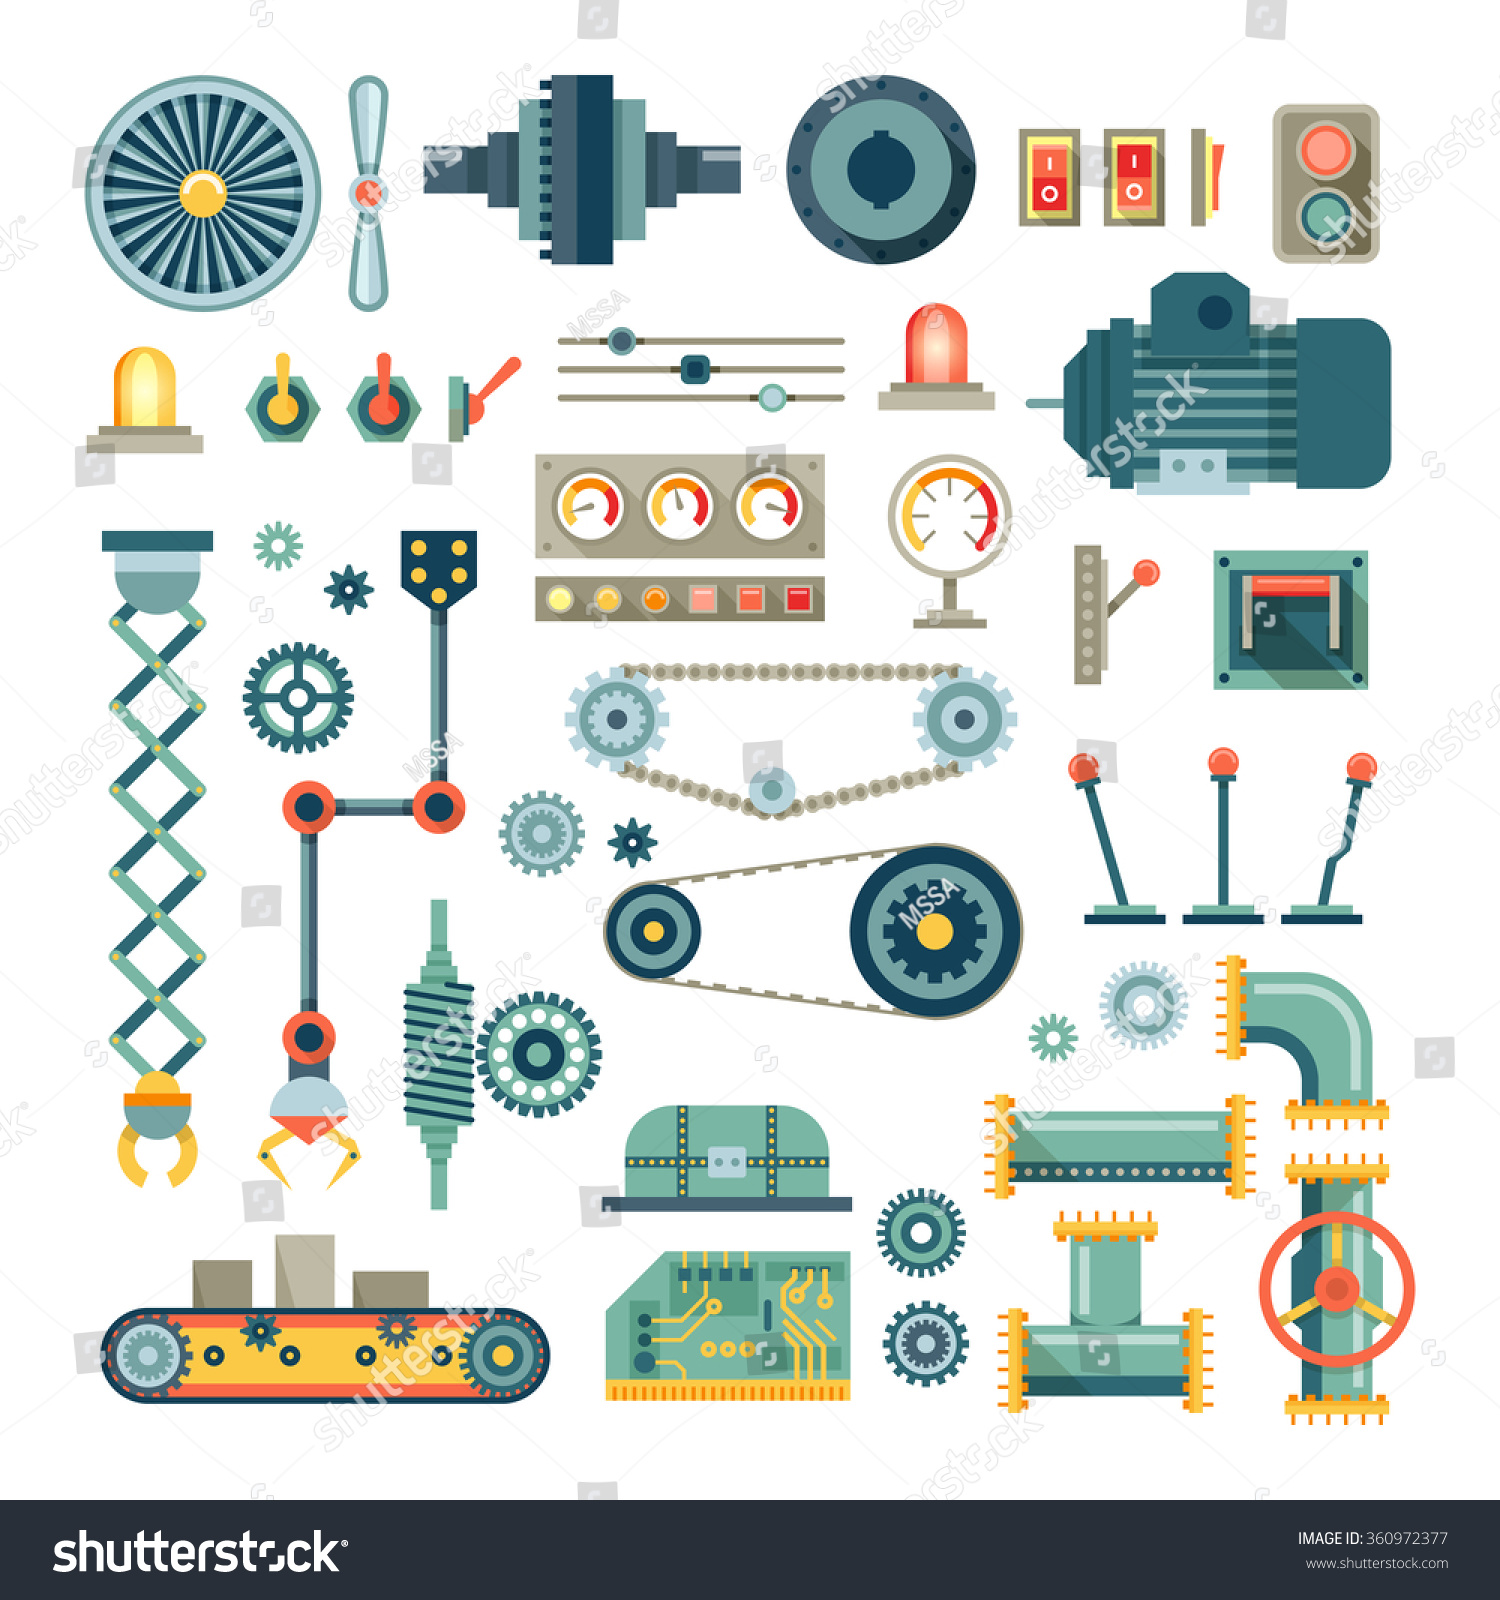 Tractor Parts Icon : Parts machinery robot flat icons set stock vector